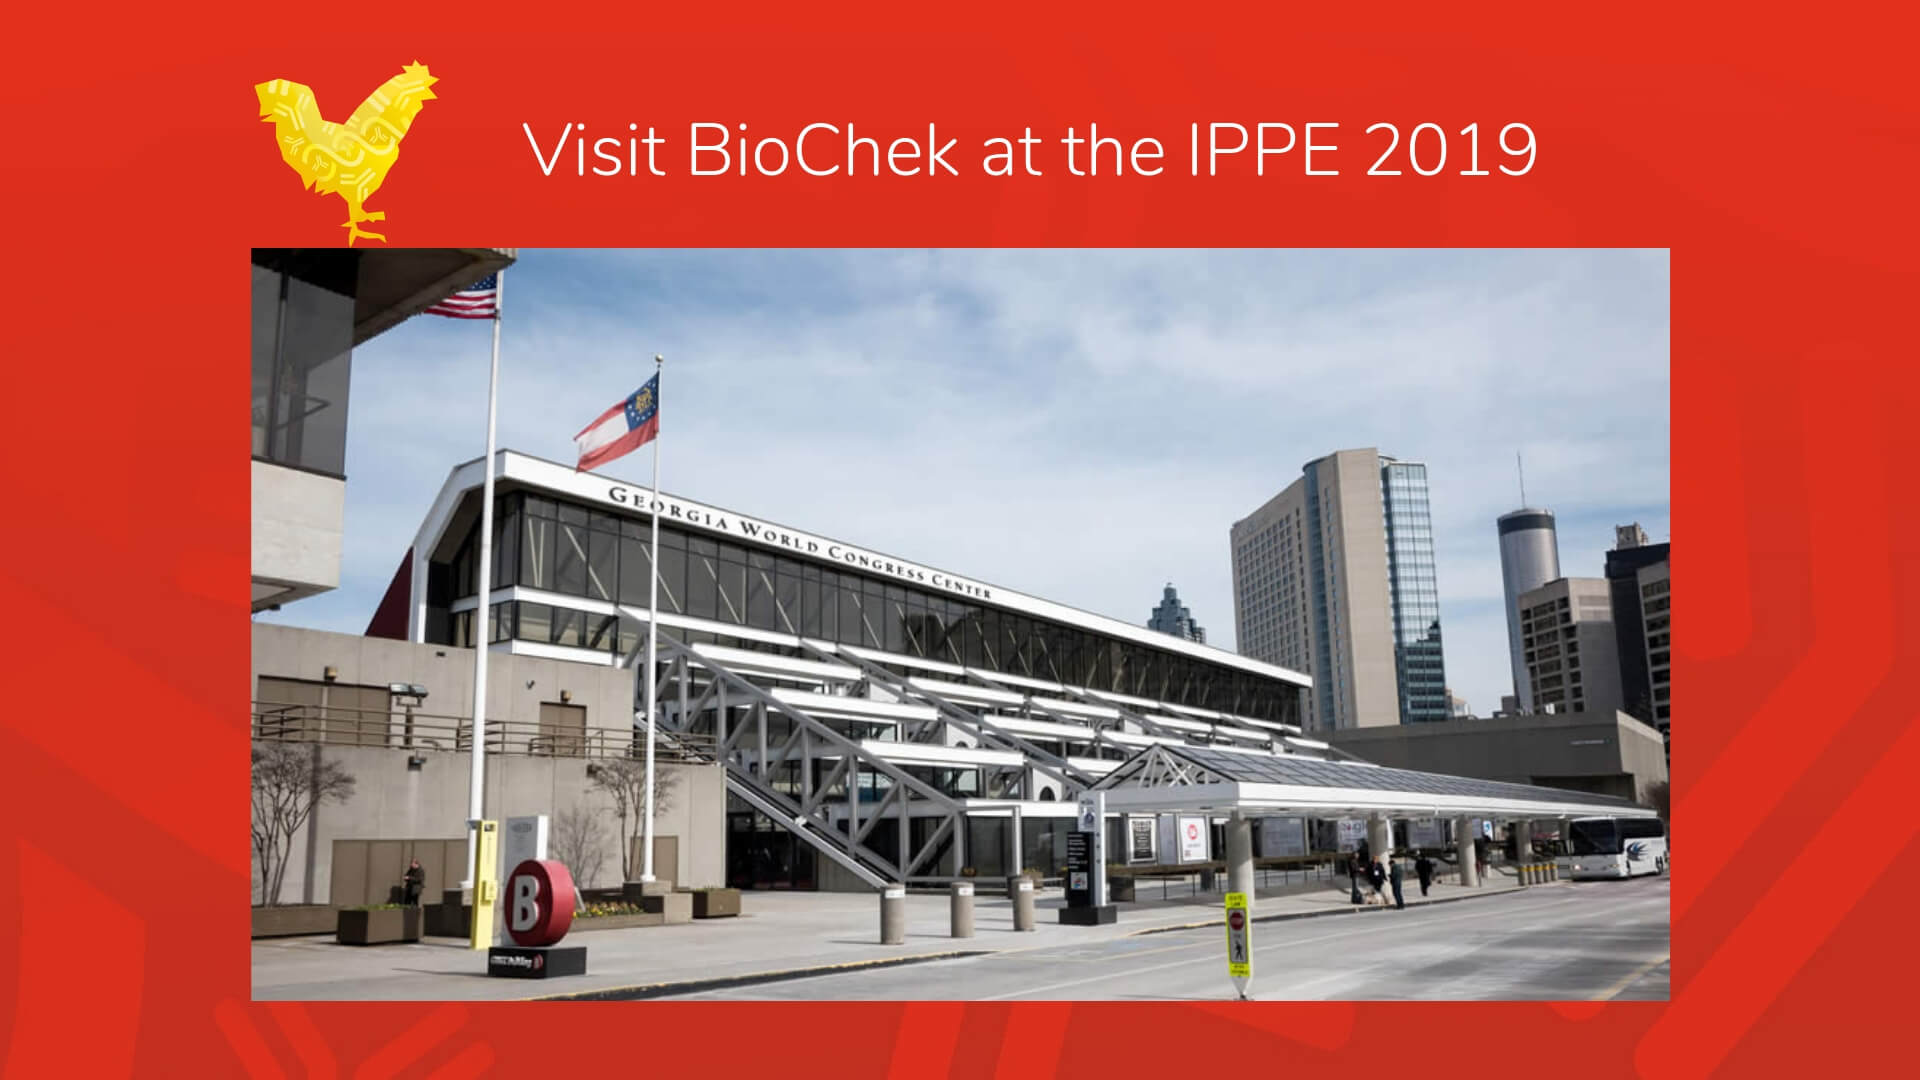 Visit BioChek at the IPPE, February 12th - 14th